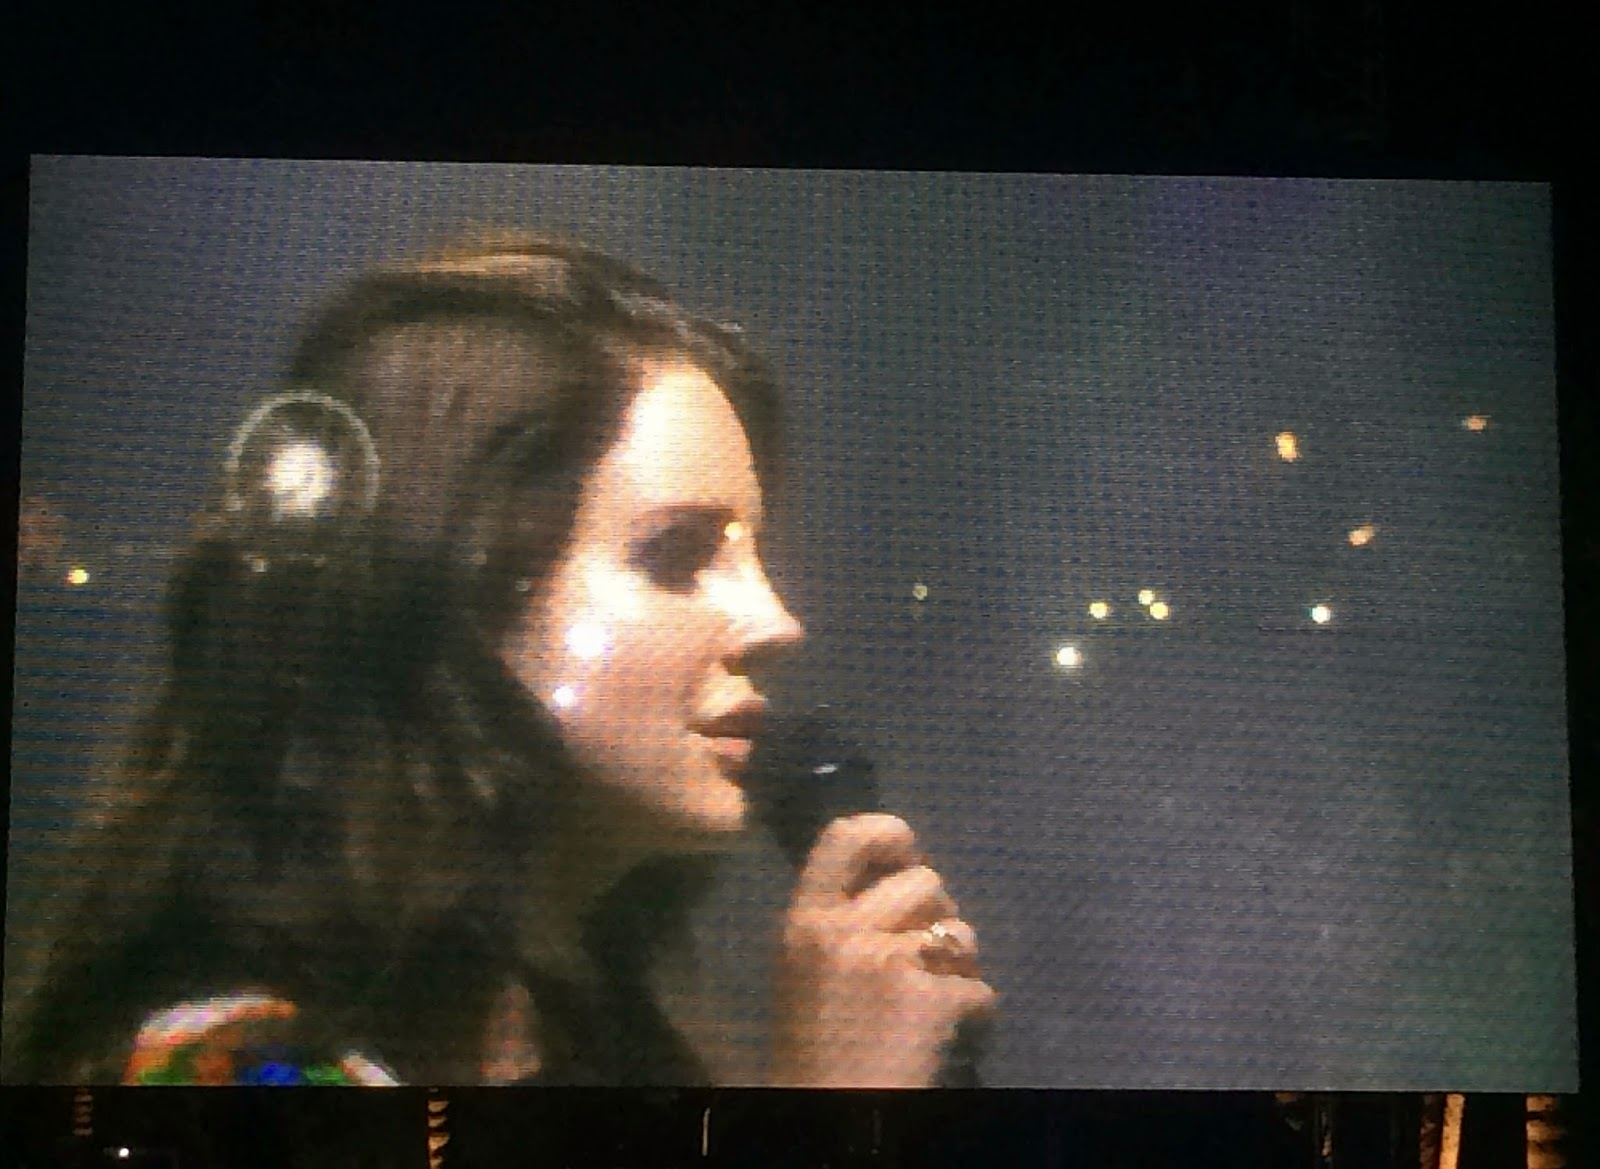 Lana Del Ray performing at Coachella